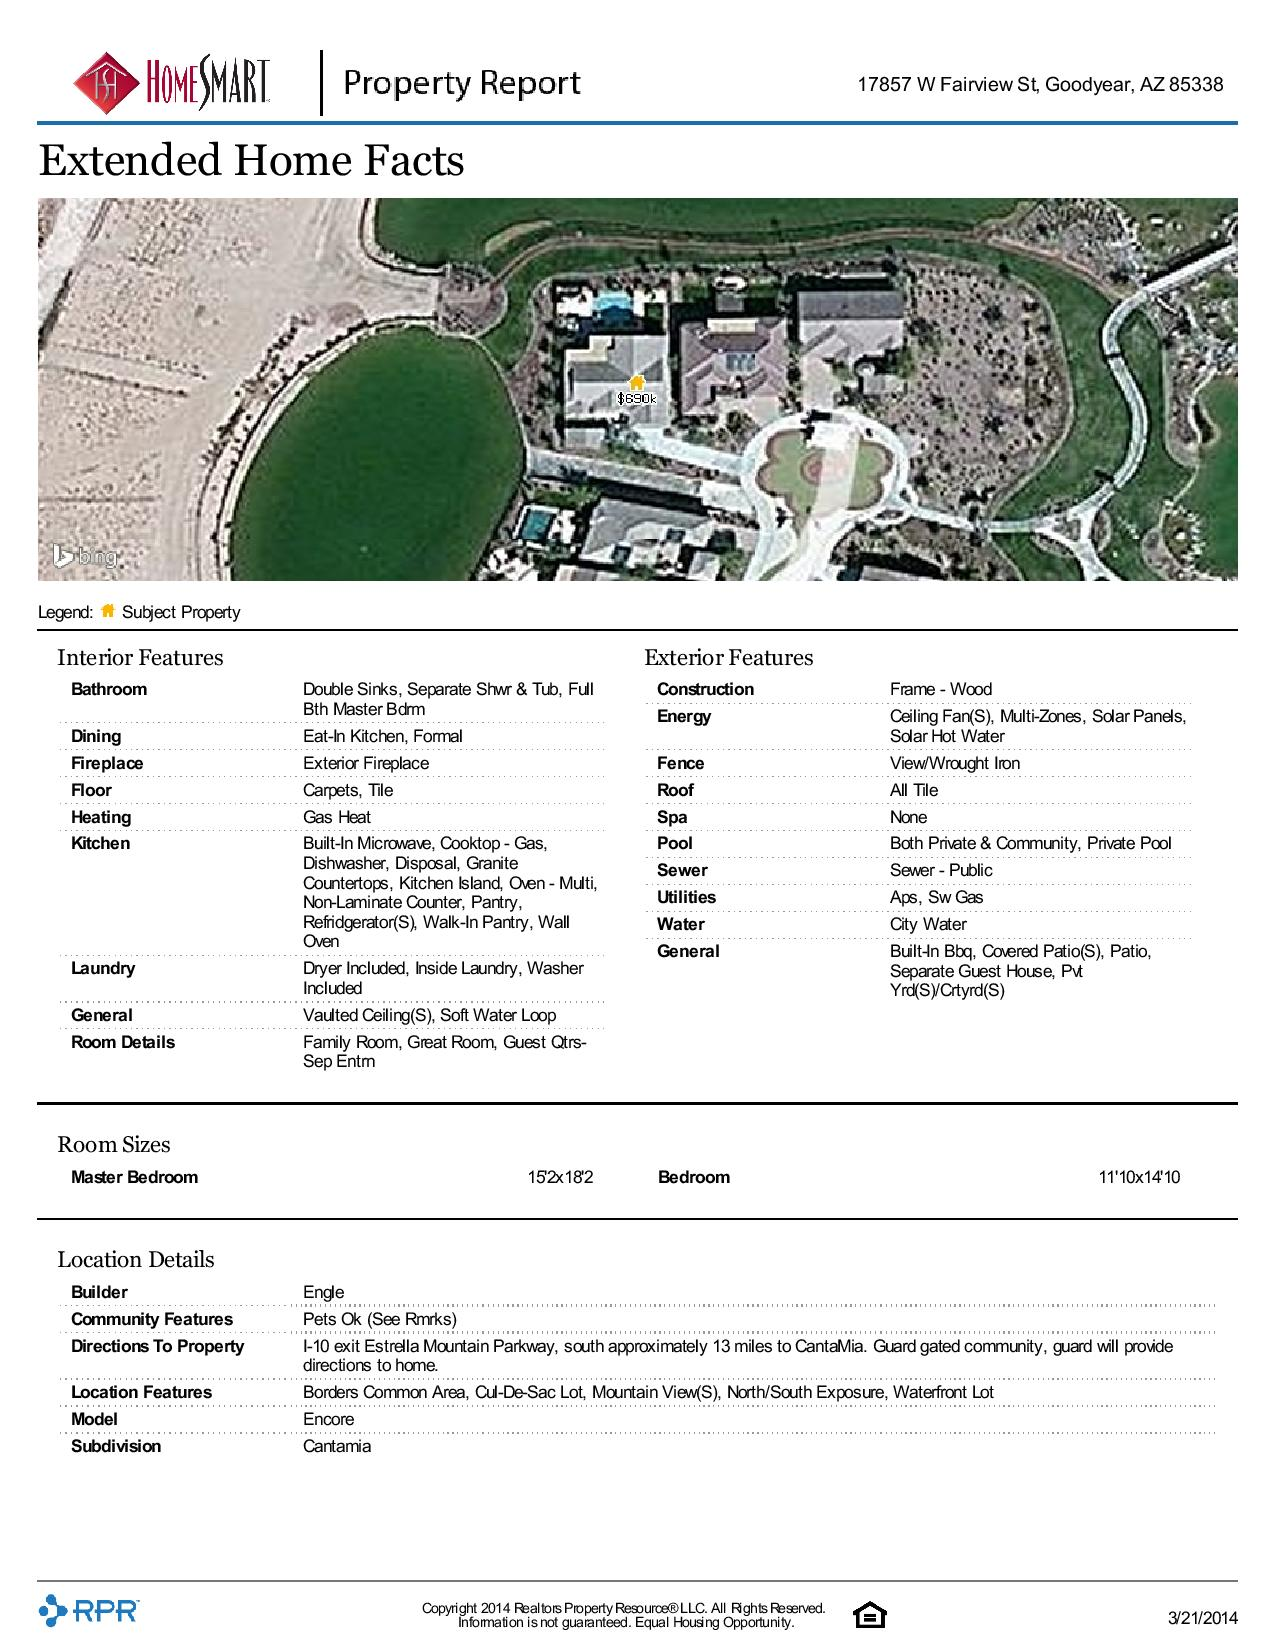 17857-W-Fairview-St-Goodyear-AZ-85338-page-004